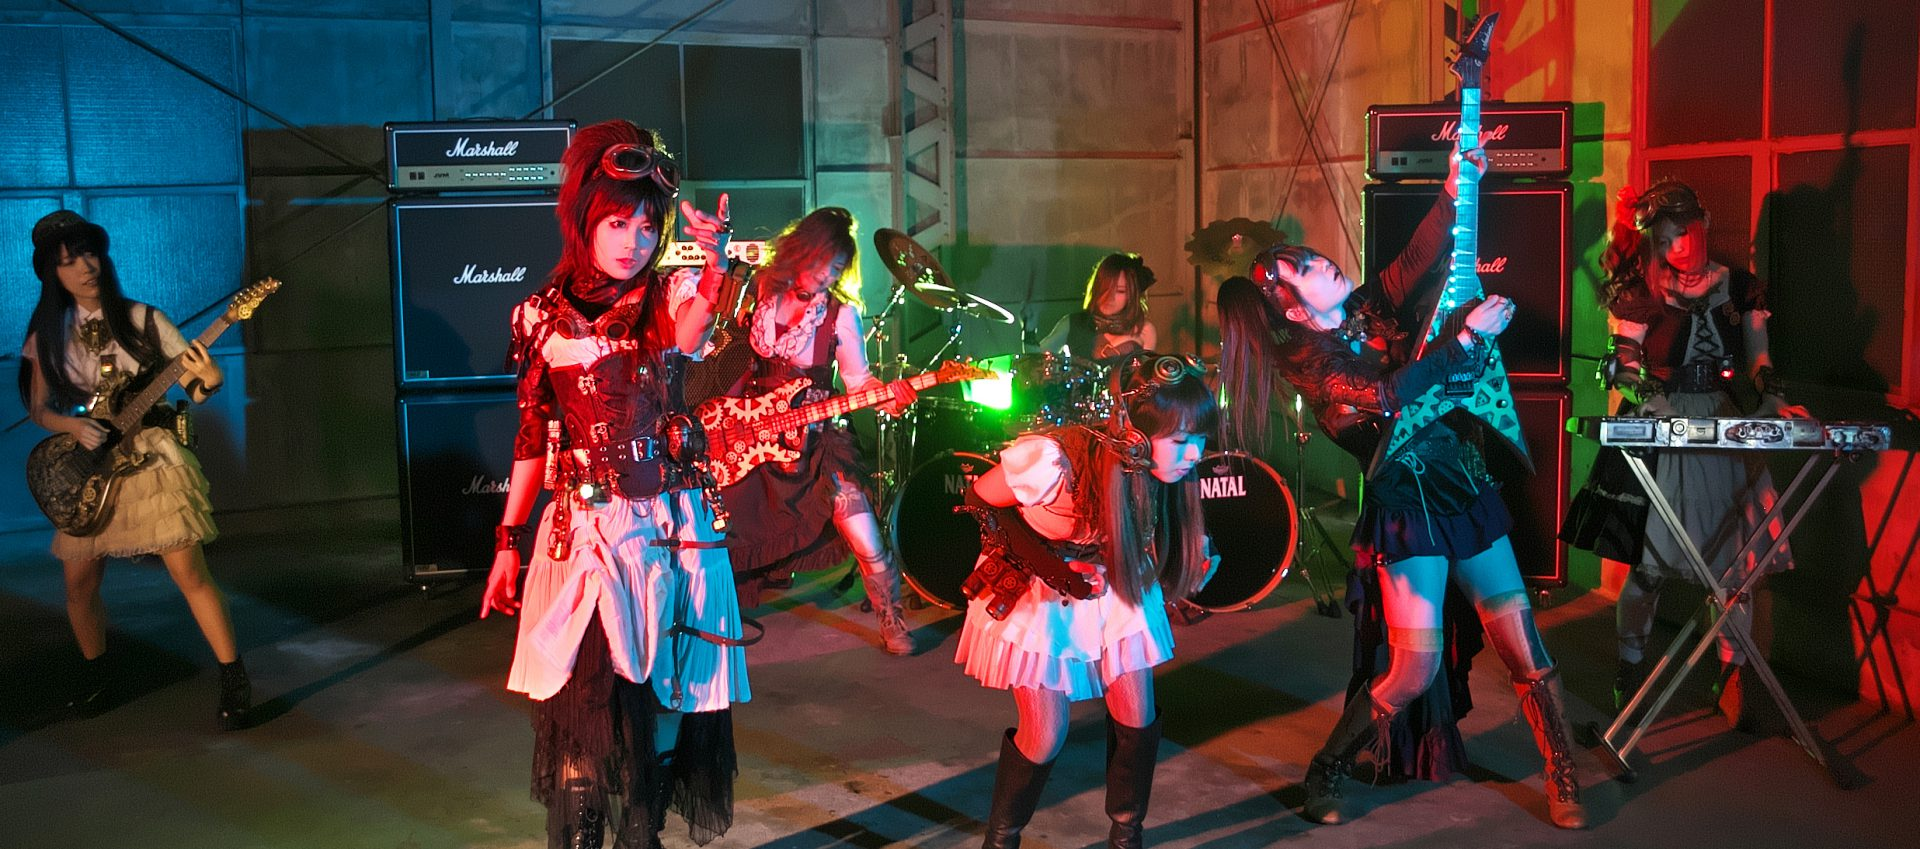 JRock247-Fate-Gear-Headless-Goddess-band